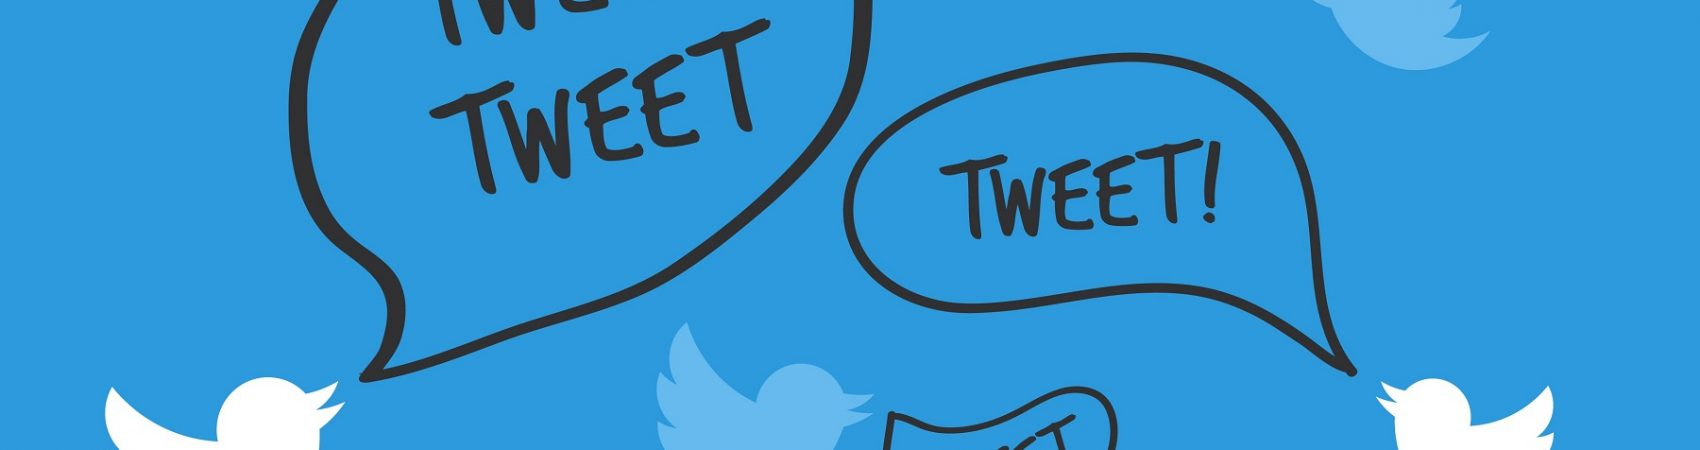 Should You Buy Twitter | S&P 500, What 2 Expect Next Week